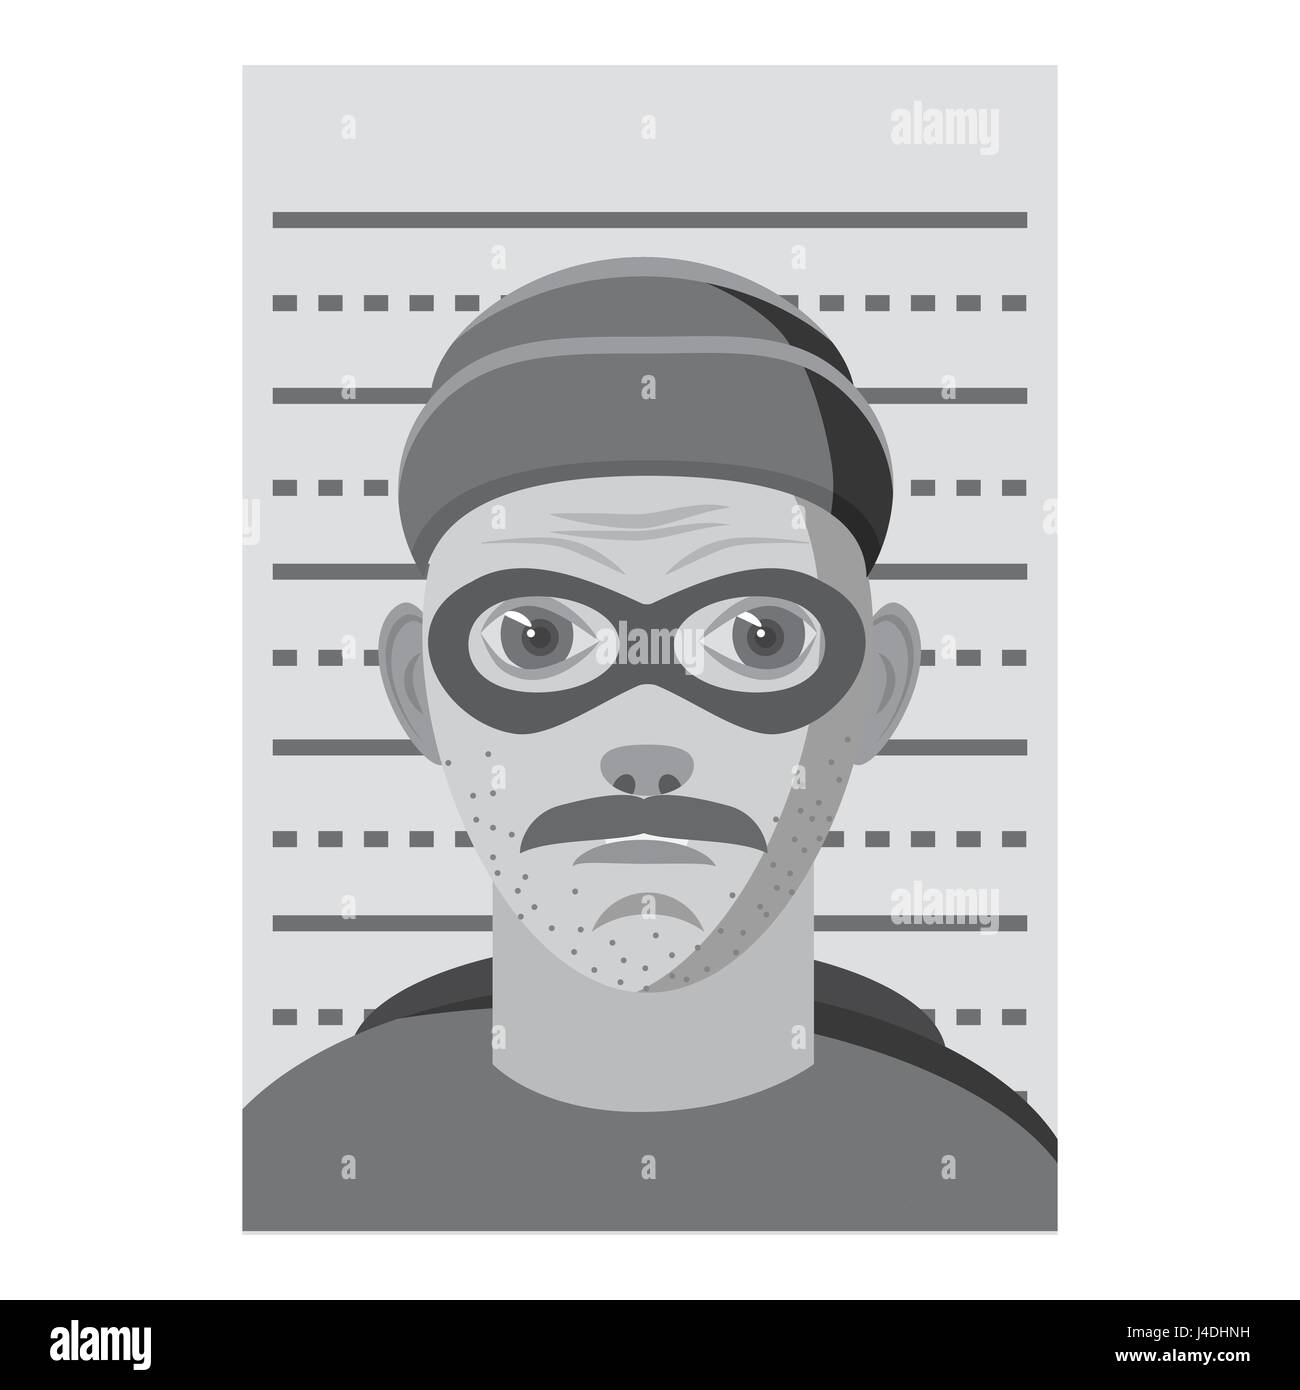 Man arrested icon, gray monochrome style - Stock Image